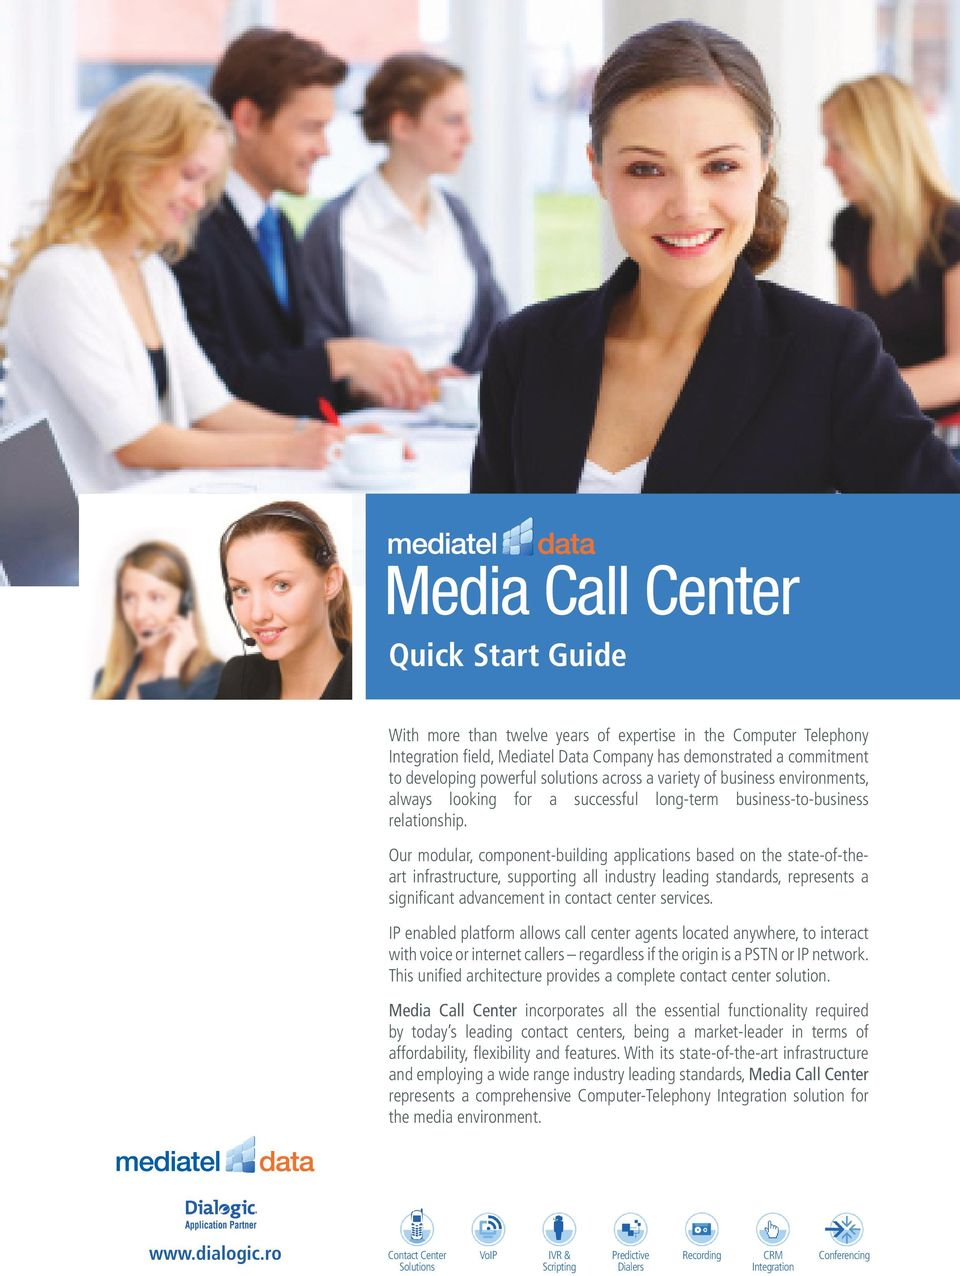 Our modular, component-building applications based on the state-of-theart infrastructure, supporting all industry leading standards, represents a significant advancement in contact center services.